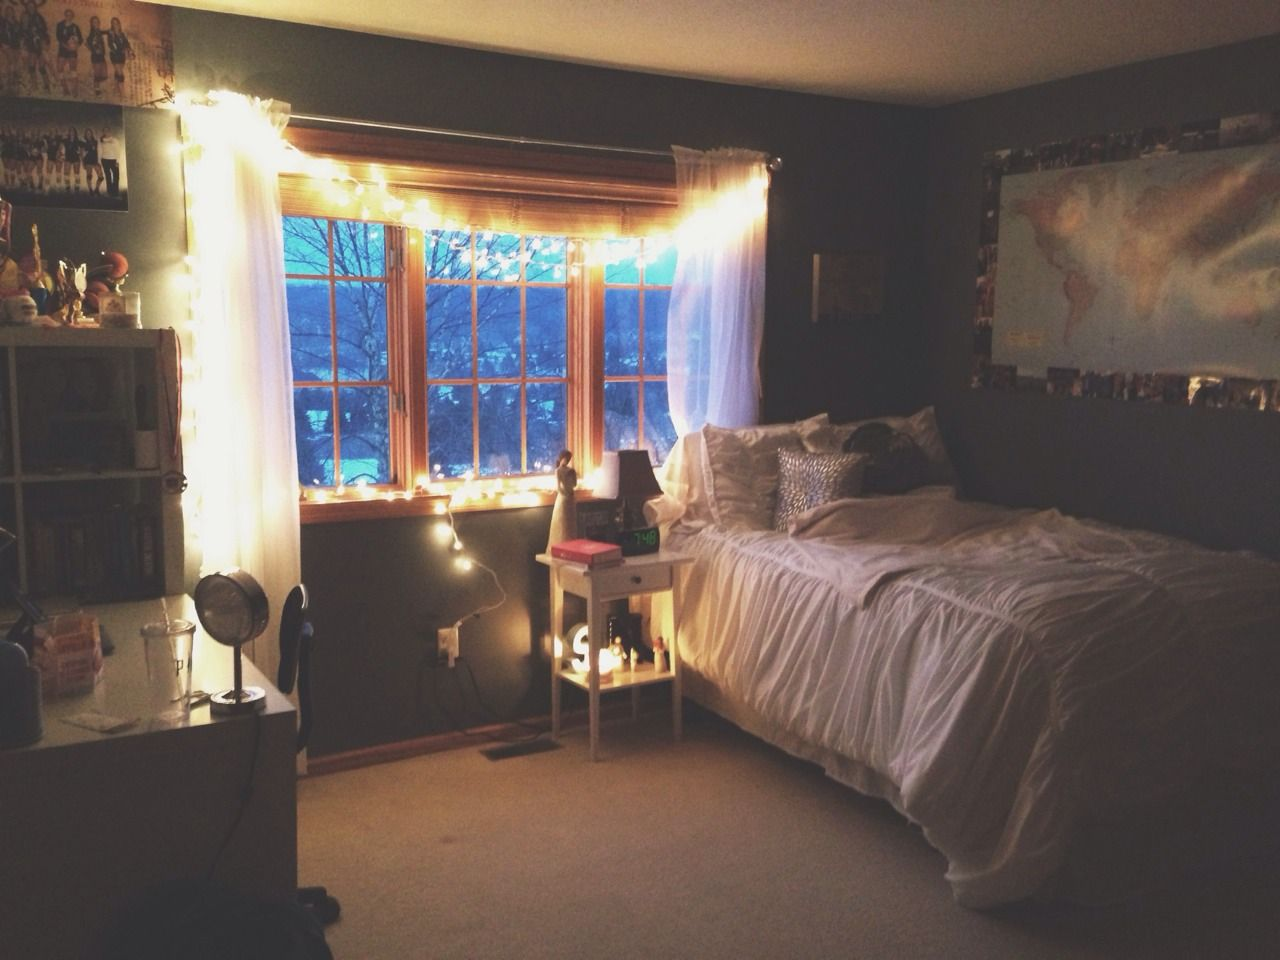 6e20fa bedroom tumblr ideas - Bedroom Is Decorated With 8 Portrait Which Are Grouped In Pretty Bedrooms Tumblr Description From